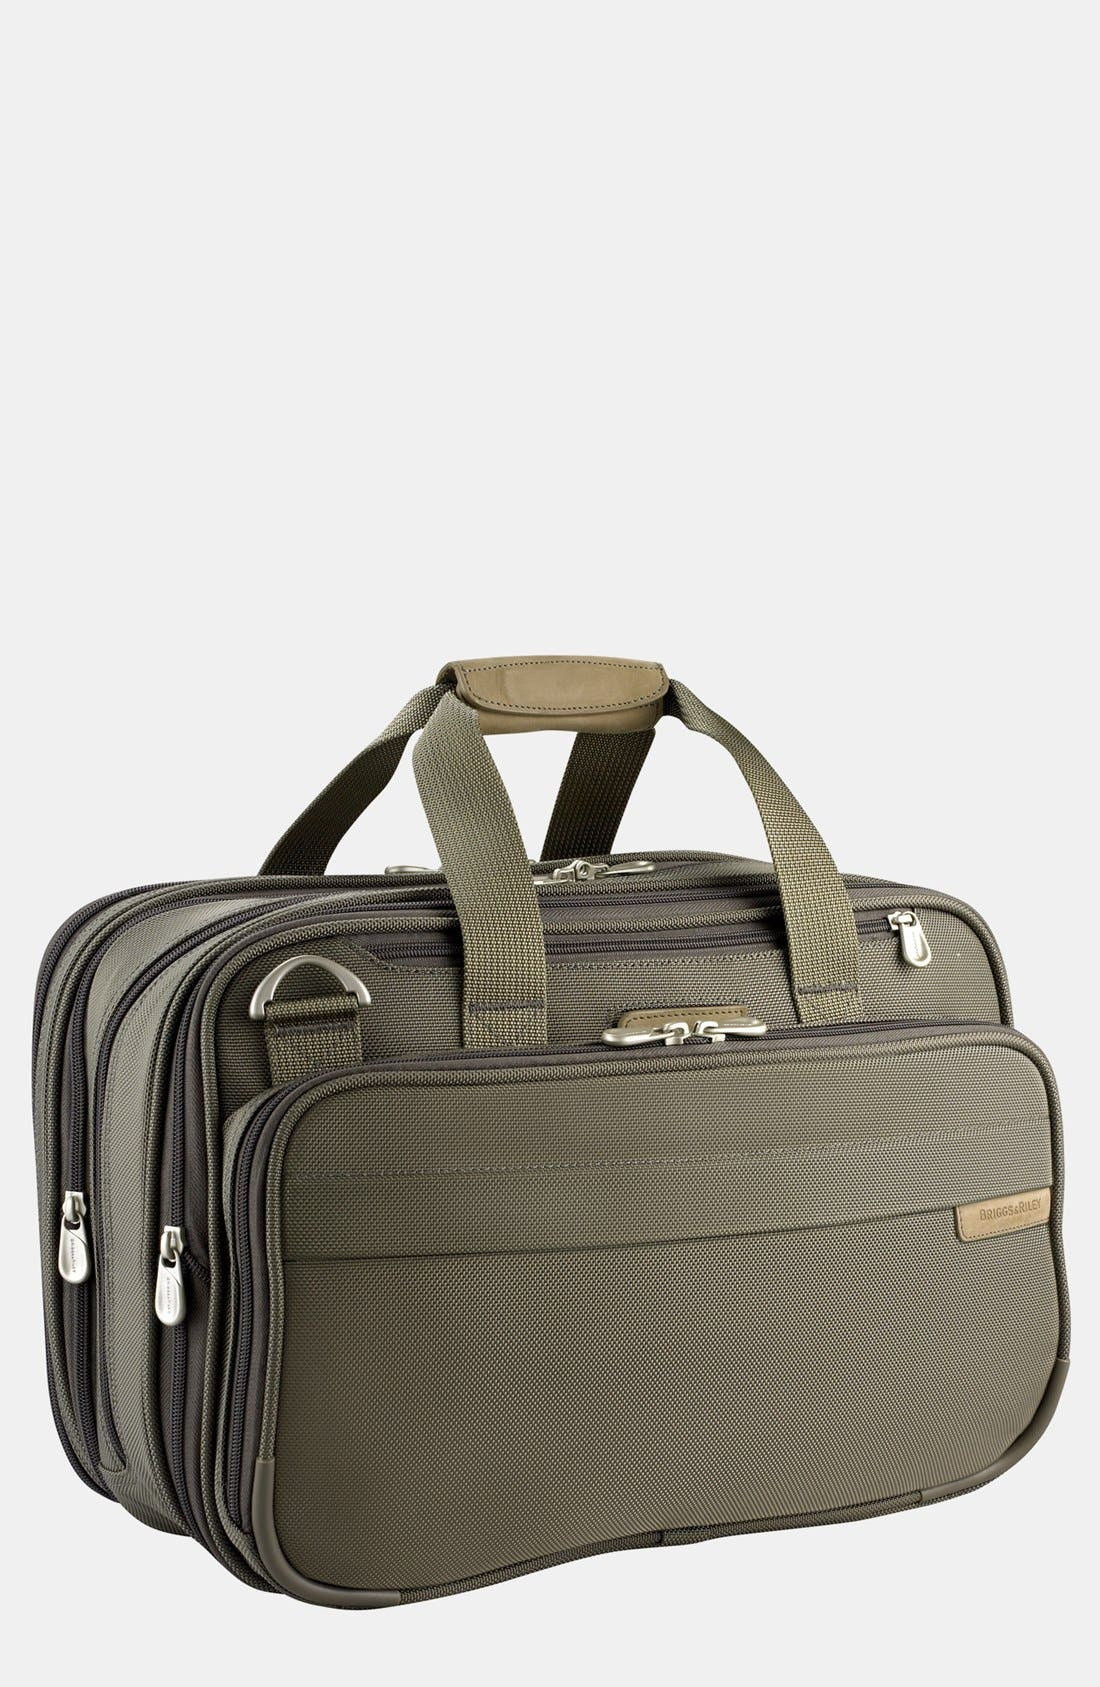 BRIGGS & RILEY Expandable Cabin Bag